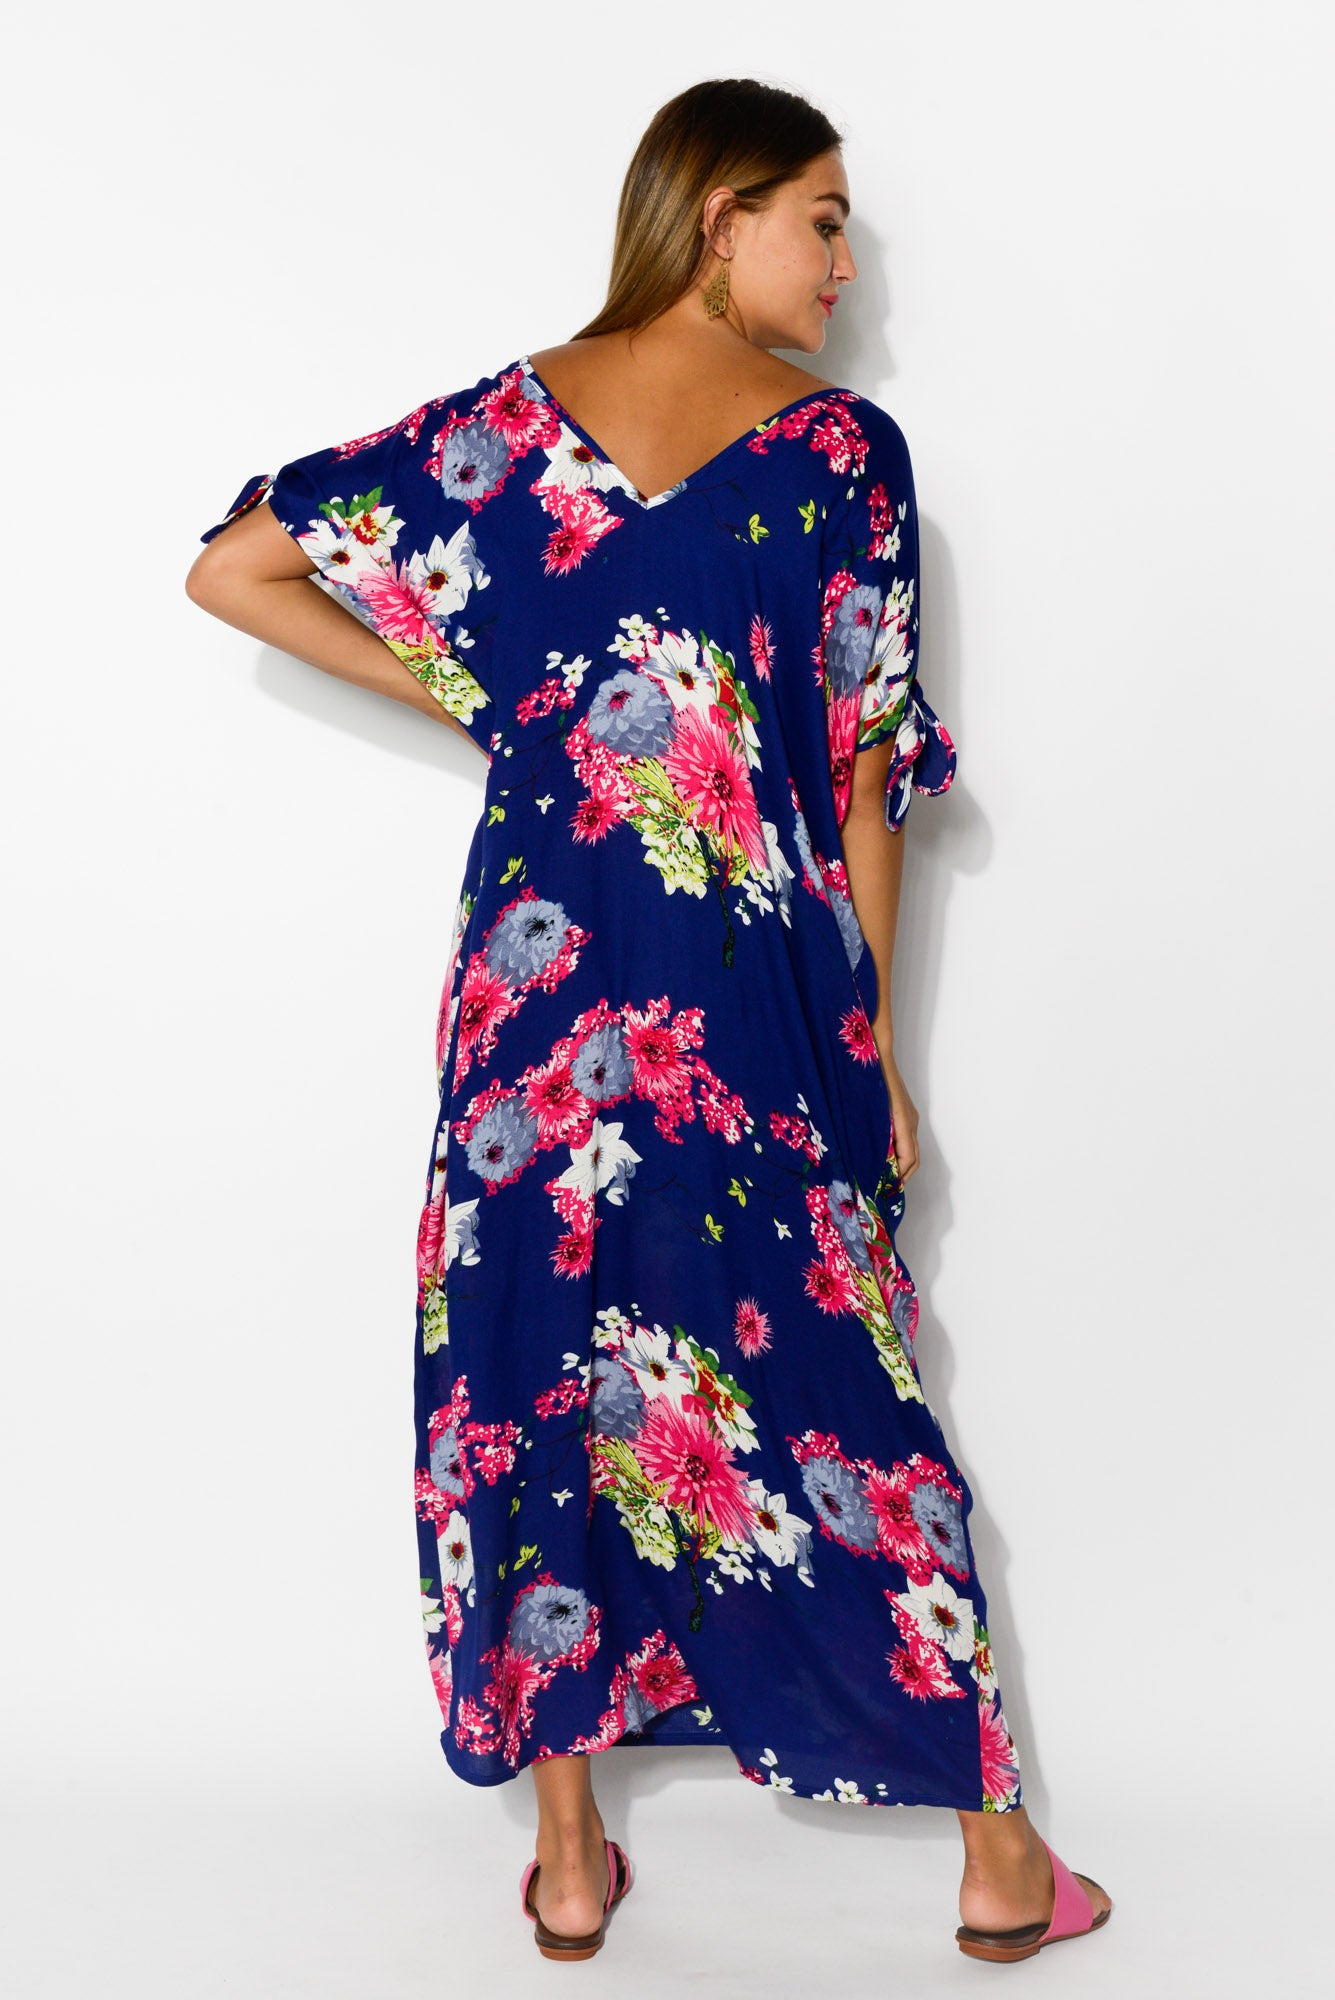 Mykonos Navy Sakura Cold Shoulder Kaftan - Blue Bungalow